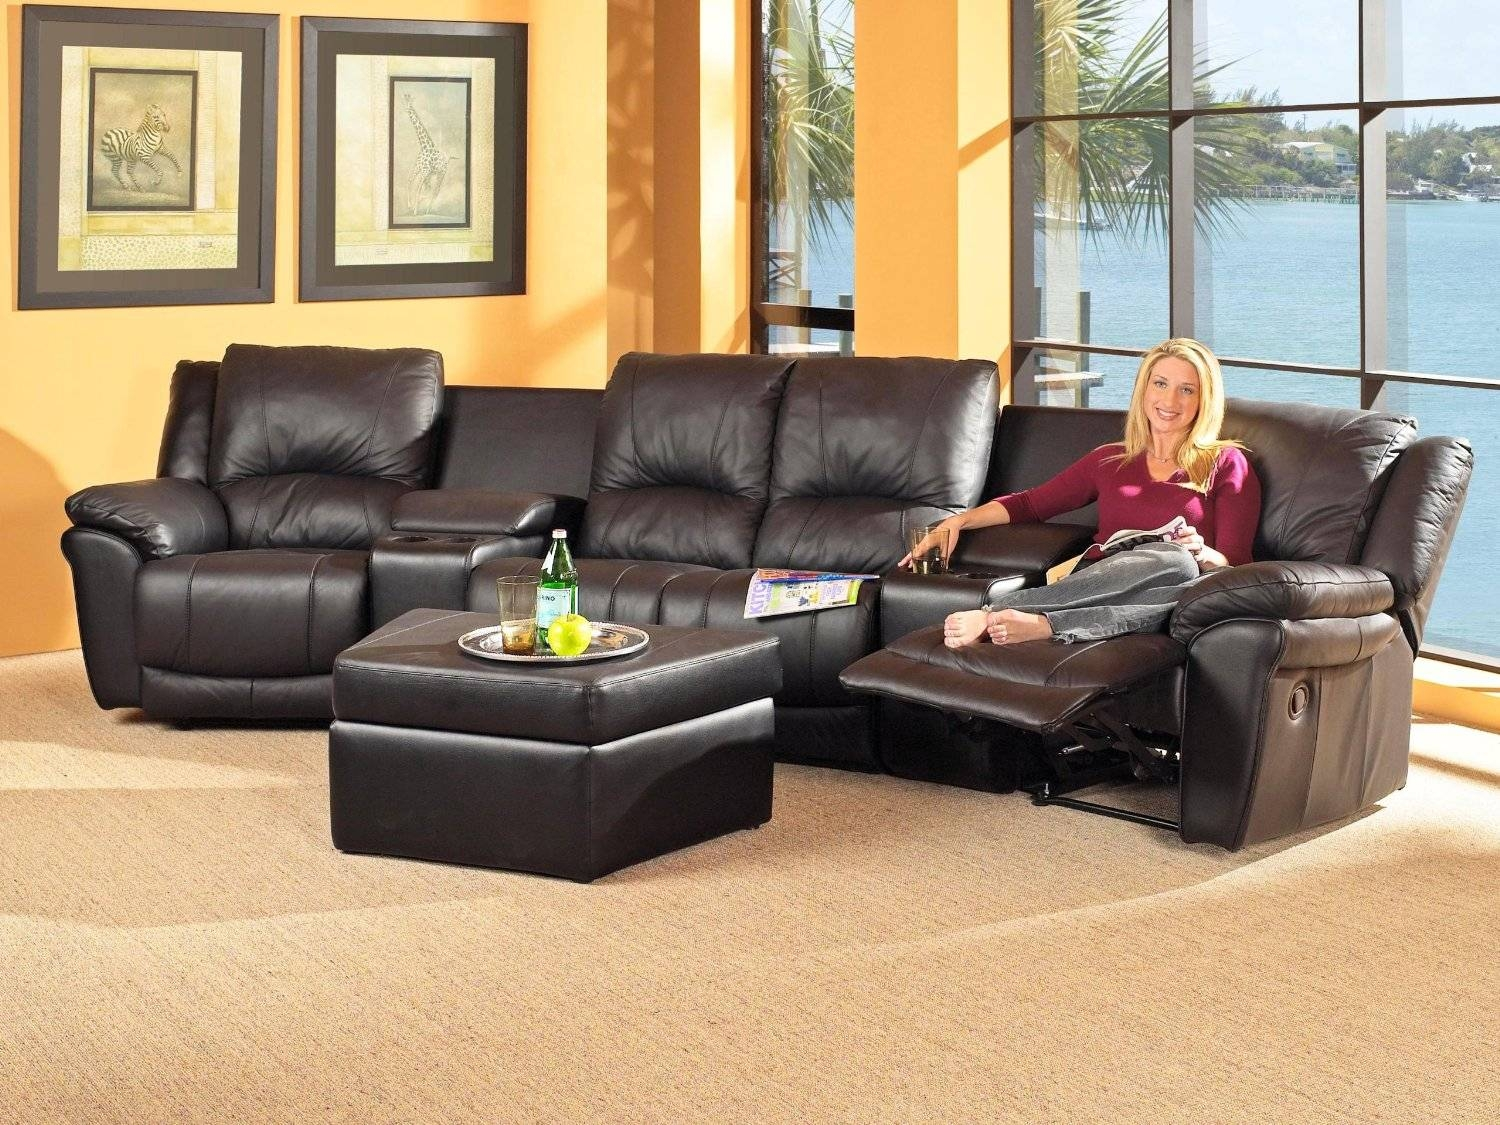 Luxury Sectional Sofas St Louis 99 With Additional Braxton with regard to Braxton Sectional Sofas (Image 12 of 15)